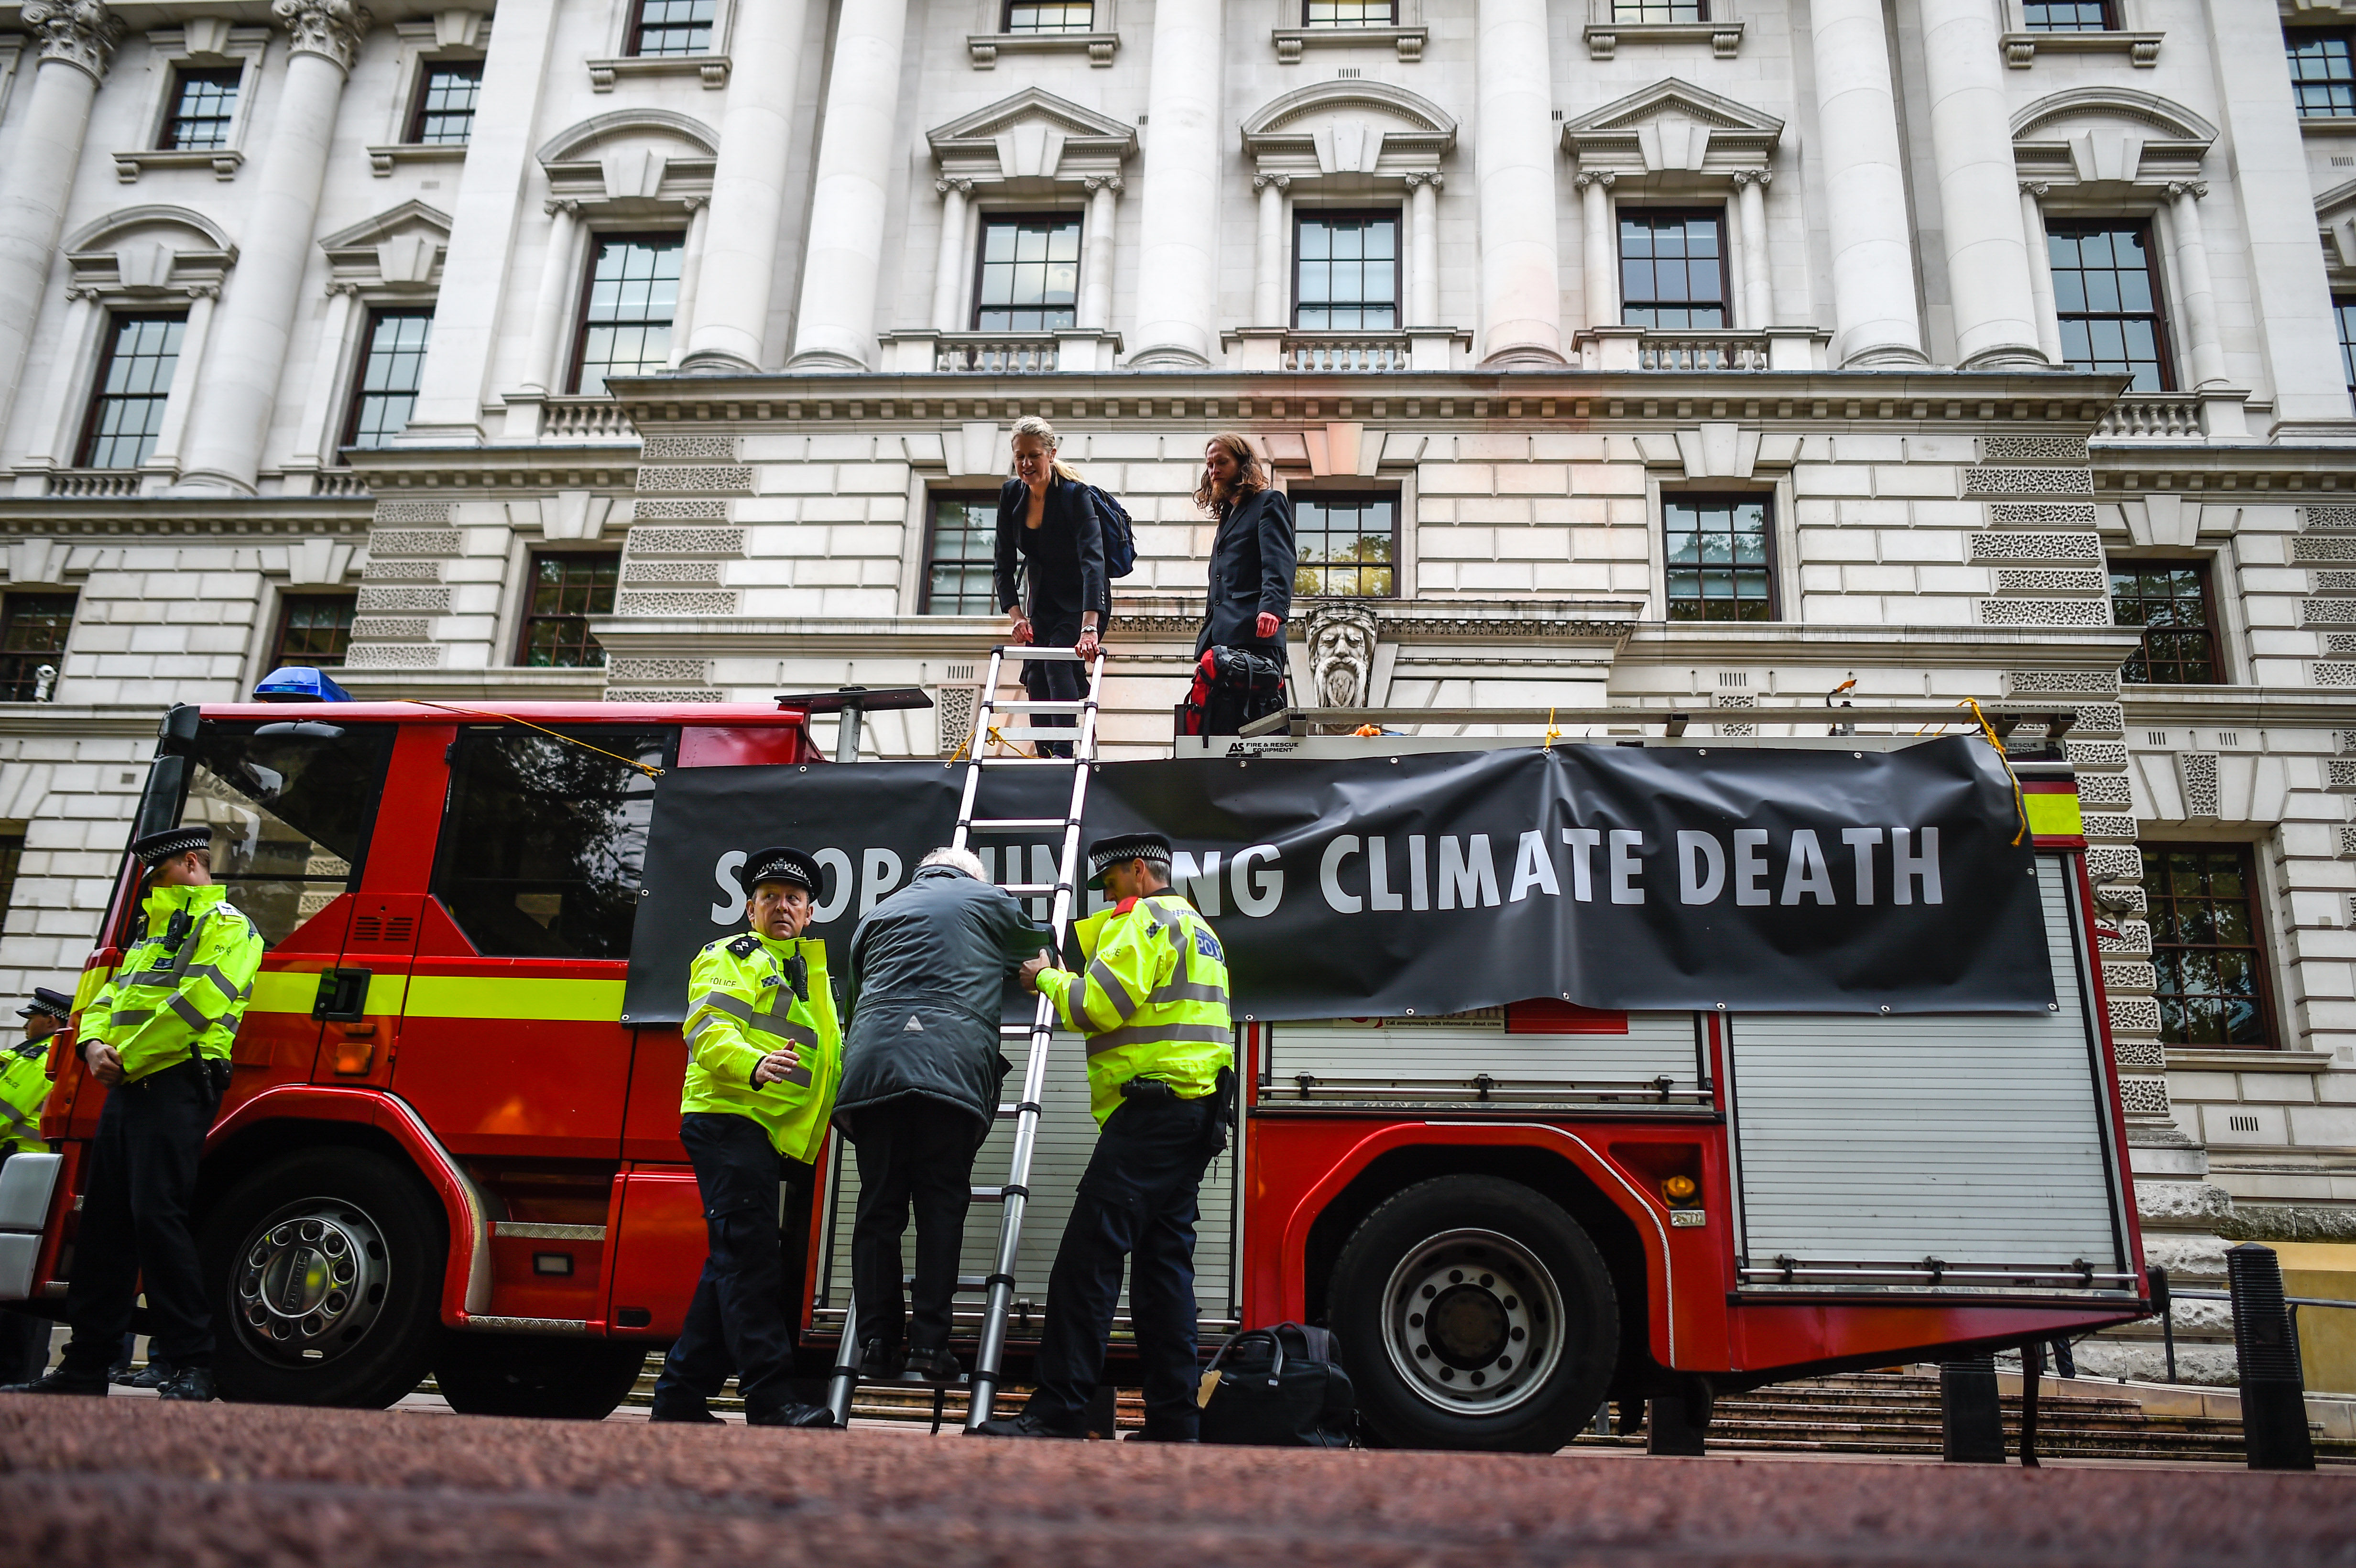 LONDON, ENGLAND - OCTOBER 03: Police officers help a climate change activist down from a fire truck outside the Treasury building on October 3, 2019 in London, England. Climate change activists from the group Extinction Rebellion used a fire engine in an attempt to spray the Treasury building. (Photo by Peter Summers/Getty Images)